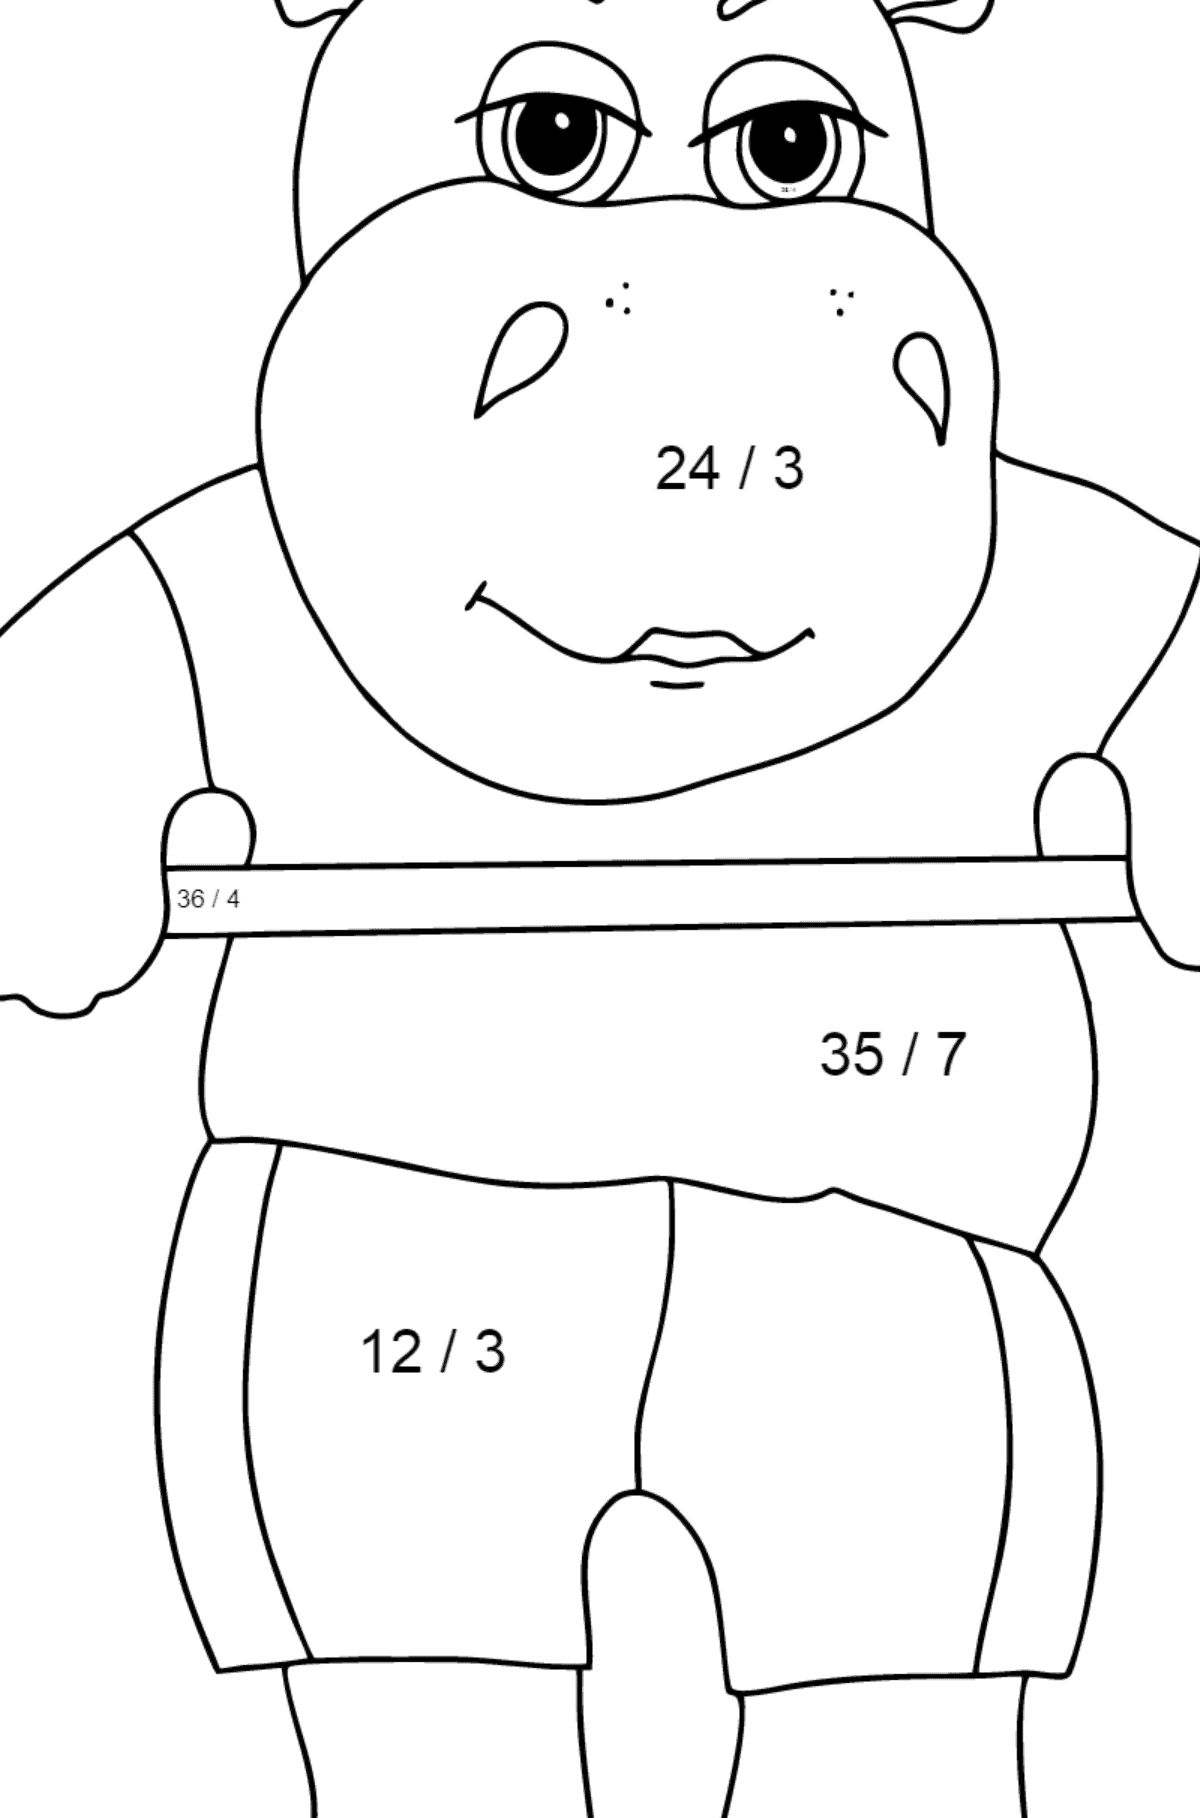 Coloring Page - A Hippo with a Barbell for Kids  - Color by Number Division